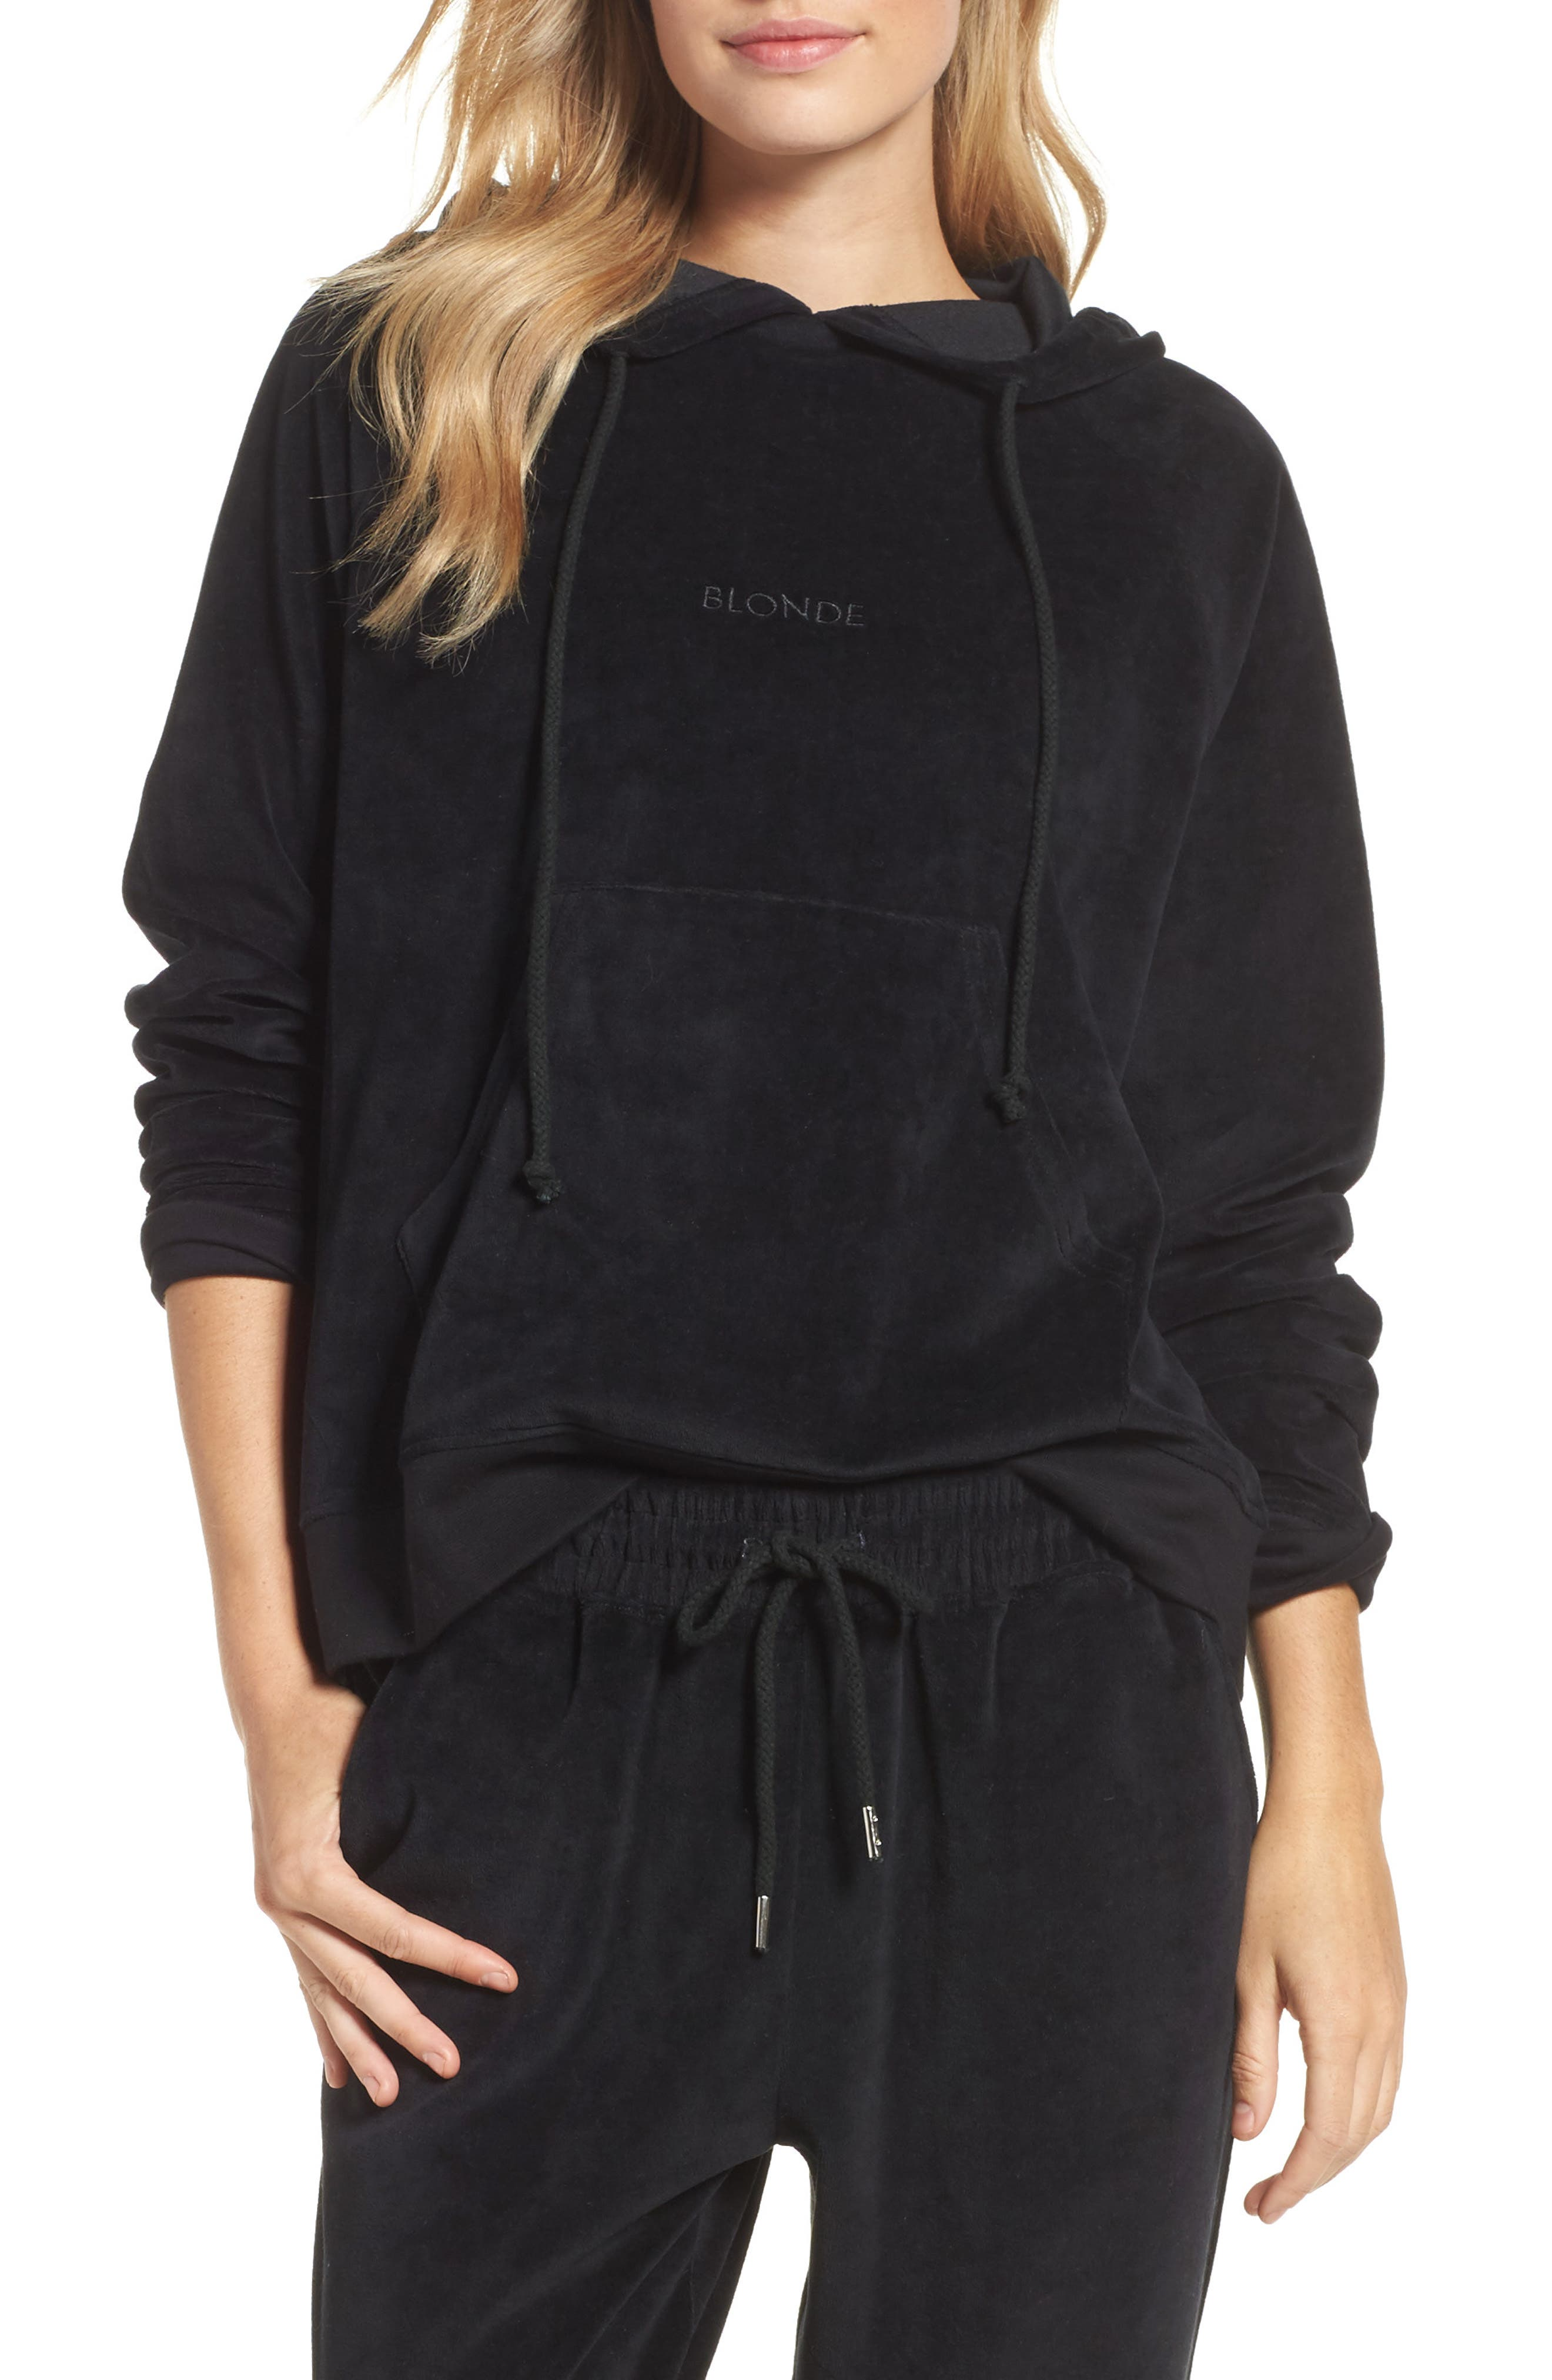 Blonde Embroidered Velour Hoodie,                             Main thumbnail 1, color,                             Black